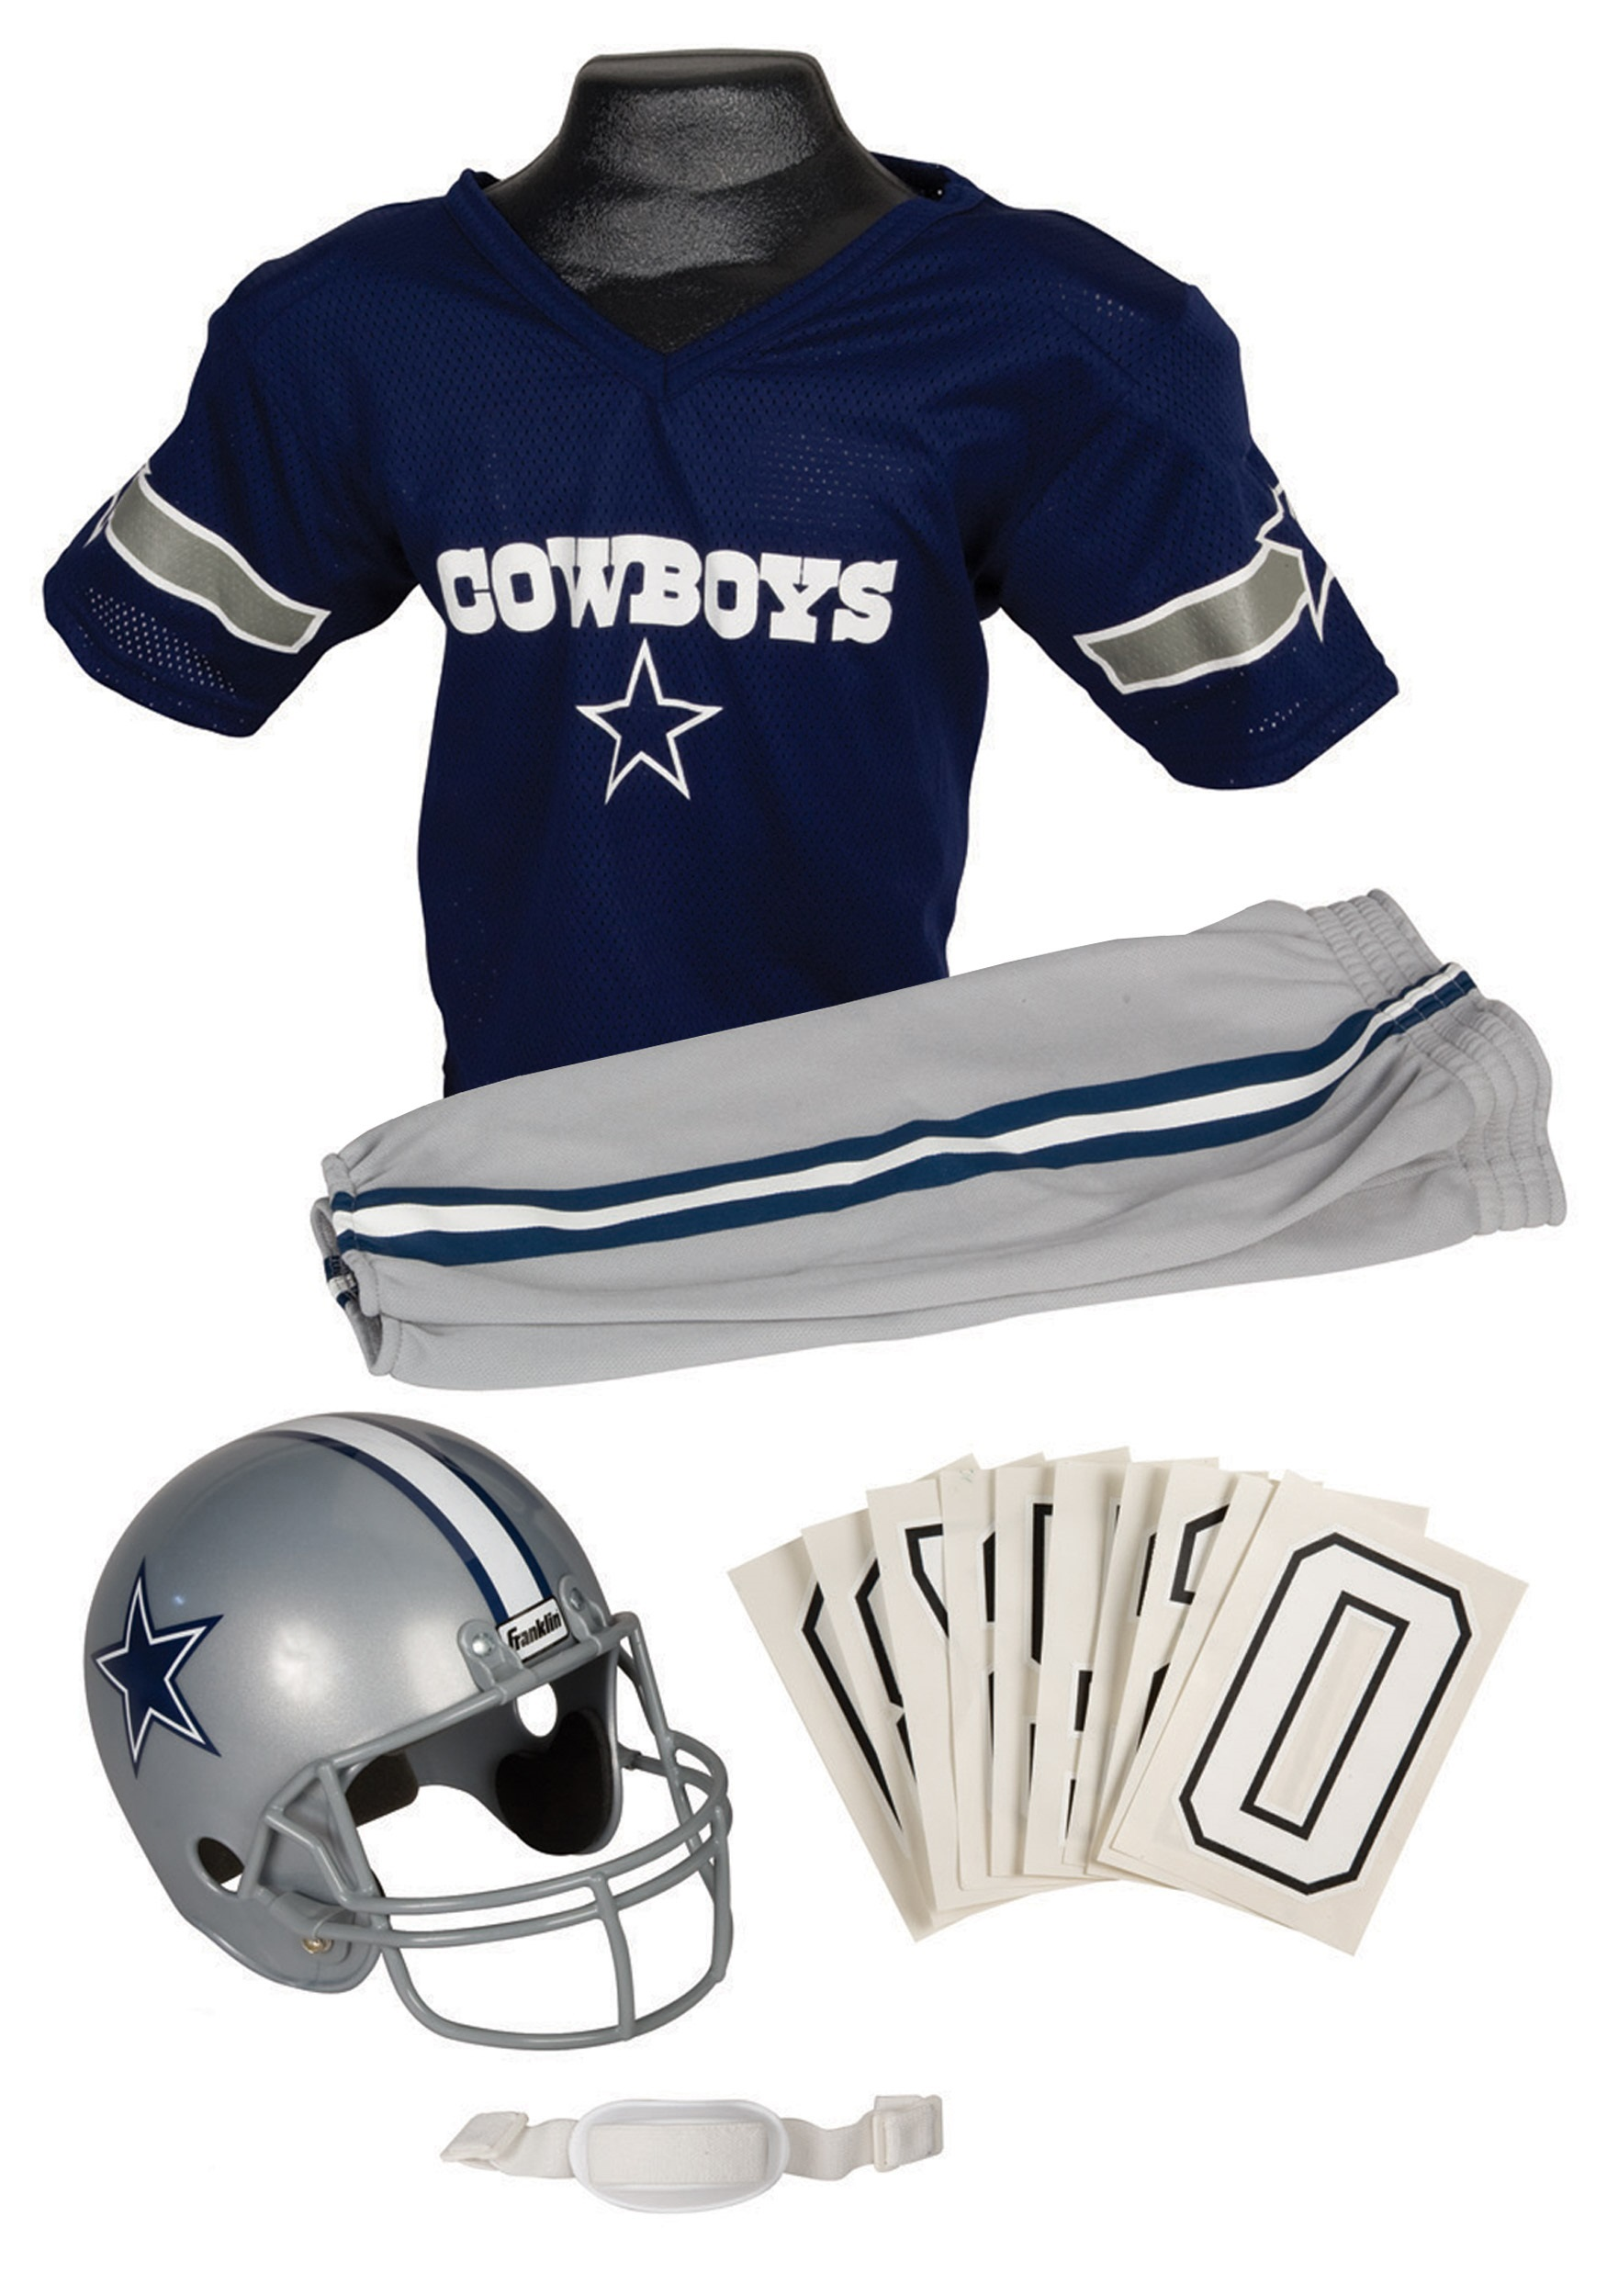 nfl cowboys uniform costume - Halloween Costume Football